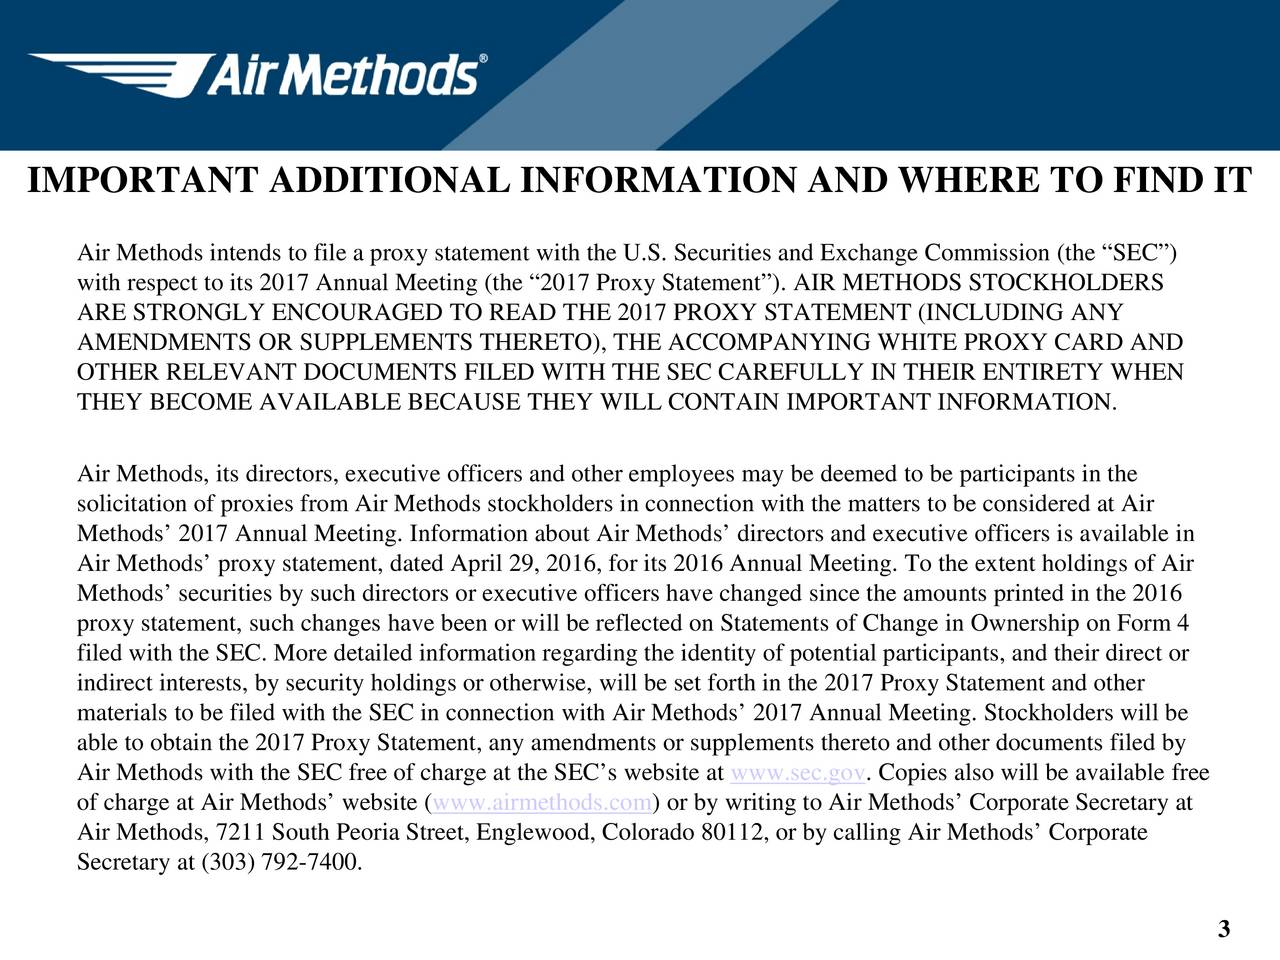 Air Methods intends to file a proxy statement with the U.S. Securities and Exchange Commission (the SEC) with respect to its 2017 Annual Meeting (the 2017 Proxy Statement). AIR METHODS STOCKHOLDERS ARE STRONGLY ENCOURAGED TO READ THE 2017 PROXY STATEMENT (INCLUDING ANY AMENDMENTS OR SUPPLEMENTS THERETO), THE ACCOMPANYING WHITE PROXY CARD AND OTHER RELEVANT DOCUMENTS FILED WITH THE SEC CAREFULLY IN THEIR ENTIRETY WHEN THEY BECOME AVAILABLE BECAUSE THEY WILL CONTAIN IMPORTANT INFORMATION. Air Methods, its directors, executive officers and other employees may be deemed to be participants in the solicitation of proxies from Air Methods stockholders in connection with the matters to be considered at Air Methods 2017 Annual Meeting. Information about Air Methods directors and executive officers is available in Air Methods proxy statement, dated April 29, 2016, for its 2016 Annual Meeting. To the extent holdings of Air Methods securities by such directors or executive officers have changed since the amounts printed in the 2016 proxy statement, such changes have been or will be reflected on Statements of Change in Ownership on Form 4 filed with the SEC. More detailed information regarding the identity of potential participants, and their direct or indirect interests, by security holdings or otherwise, will be set forth in the 2017 Proxy Statement and other materials to be filed with the SEC in connection with Air Methods 2017 Annual Meeting. Stockholders will be able to obtain the 2017 Proxy Statement, any amendments or supplements thereto and other documents filed by Air Methods with the SEC free of charge at the SECs website at www.sec.govpies also will be available free of charge at Air Methods website (www.airmethods.com) or by writing to Air Methods Corporate Secretary at Air Methods, 7211 South Peoria Street, Englewood, Colorado 80112, or by calling Air Methods Corporate Secretary at (303) 792-7400. 3